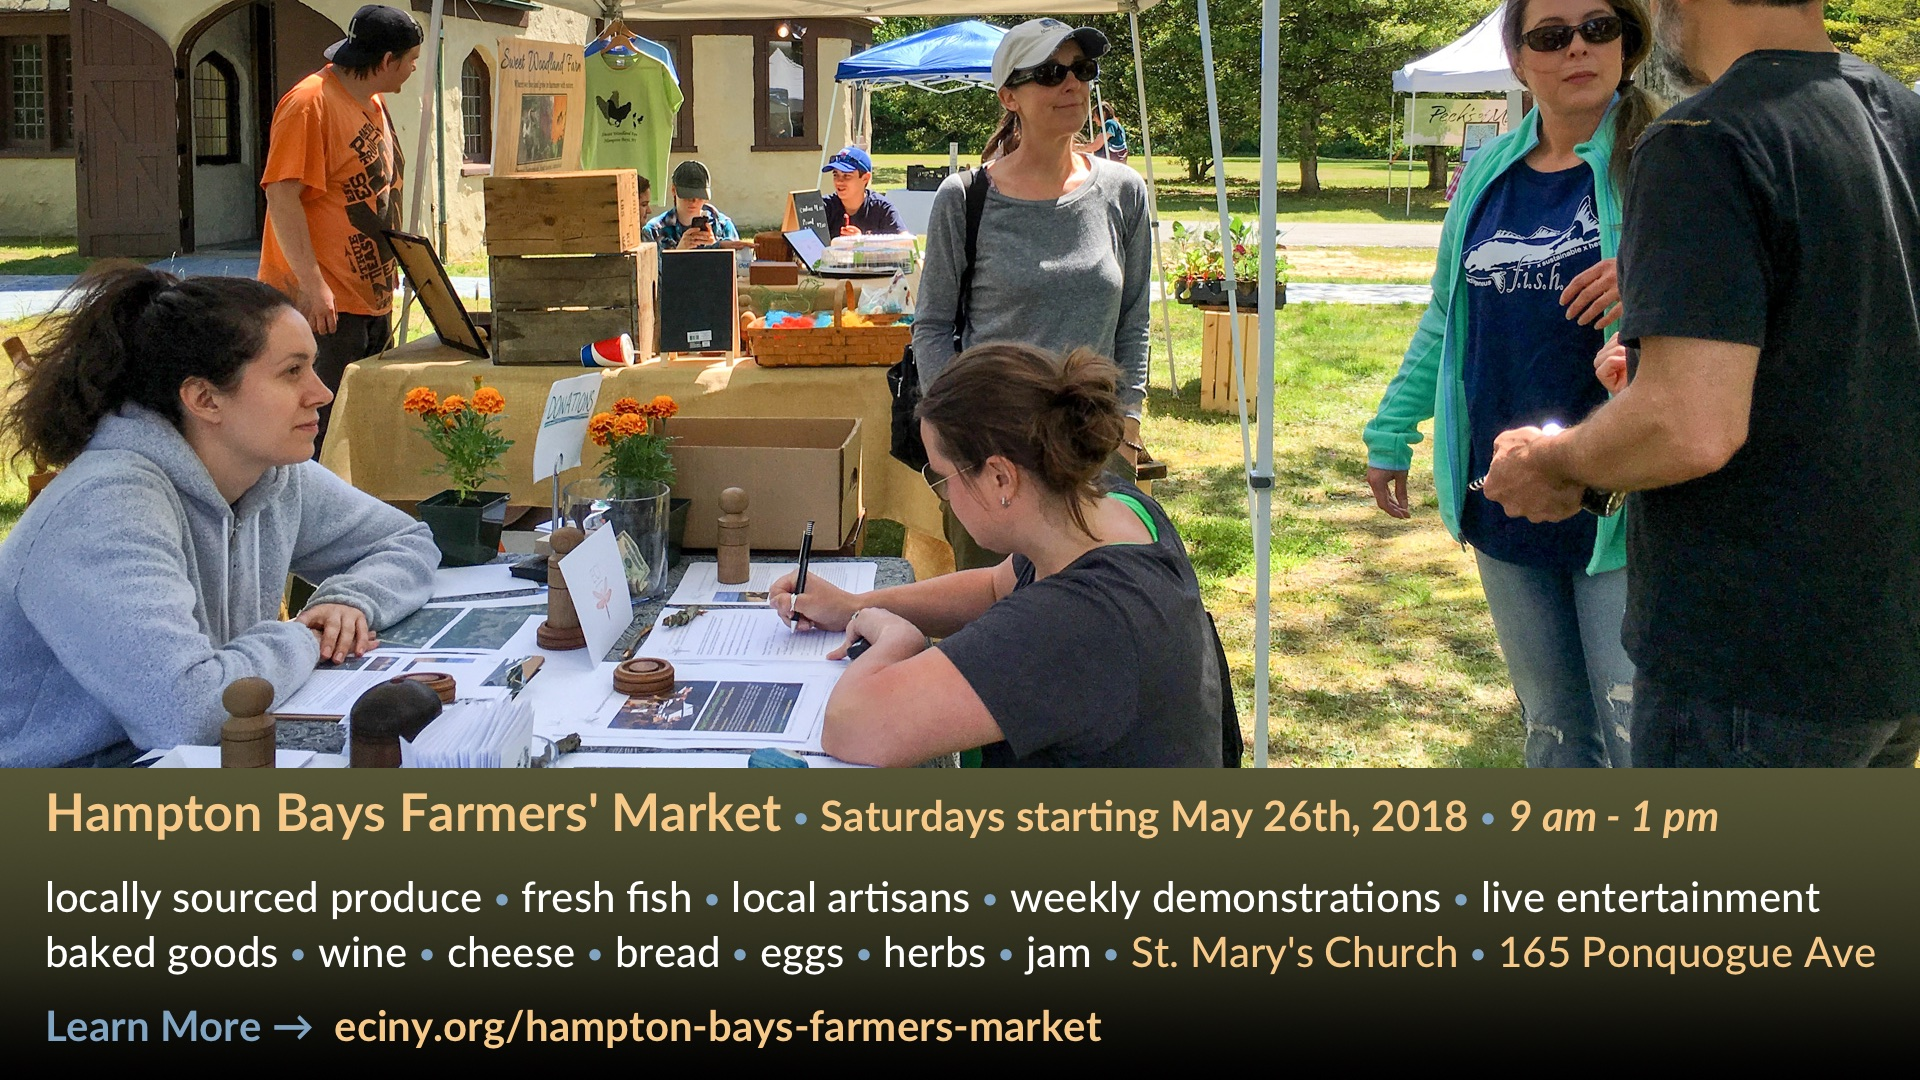 Hampton Bays Farmers' Market - May 26th, 2018 - FB cover 1920x1080.jpg